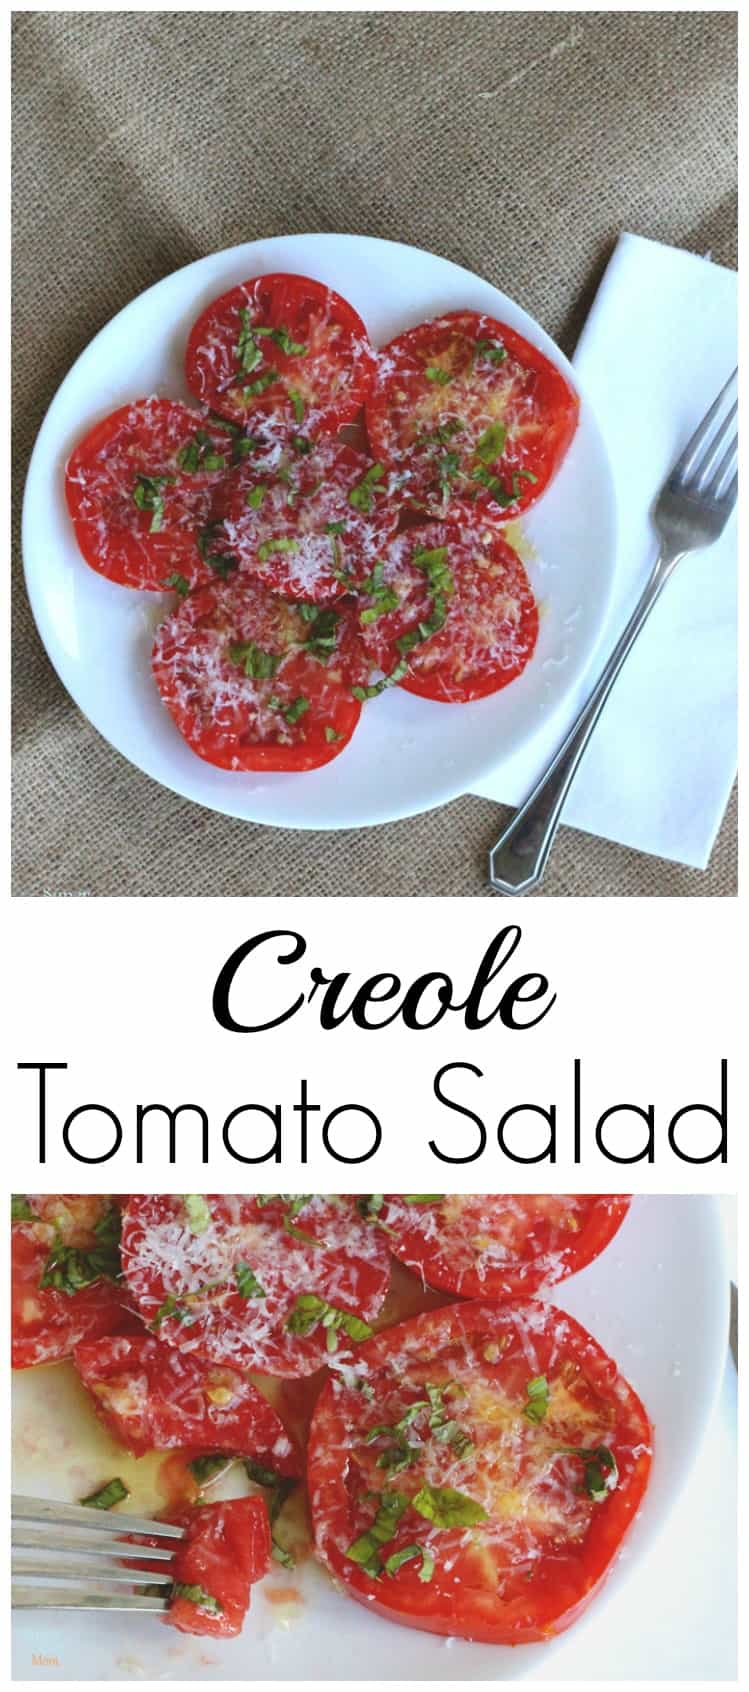 This creole tomato salad is the perfect appetizer or meal for one! Bring on the love for fresh food!